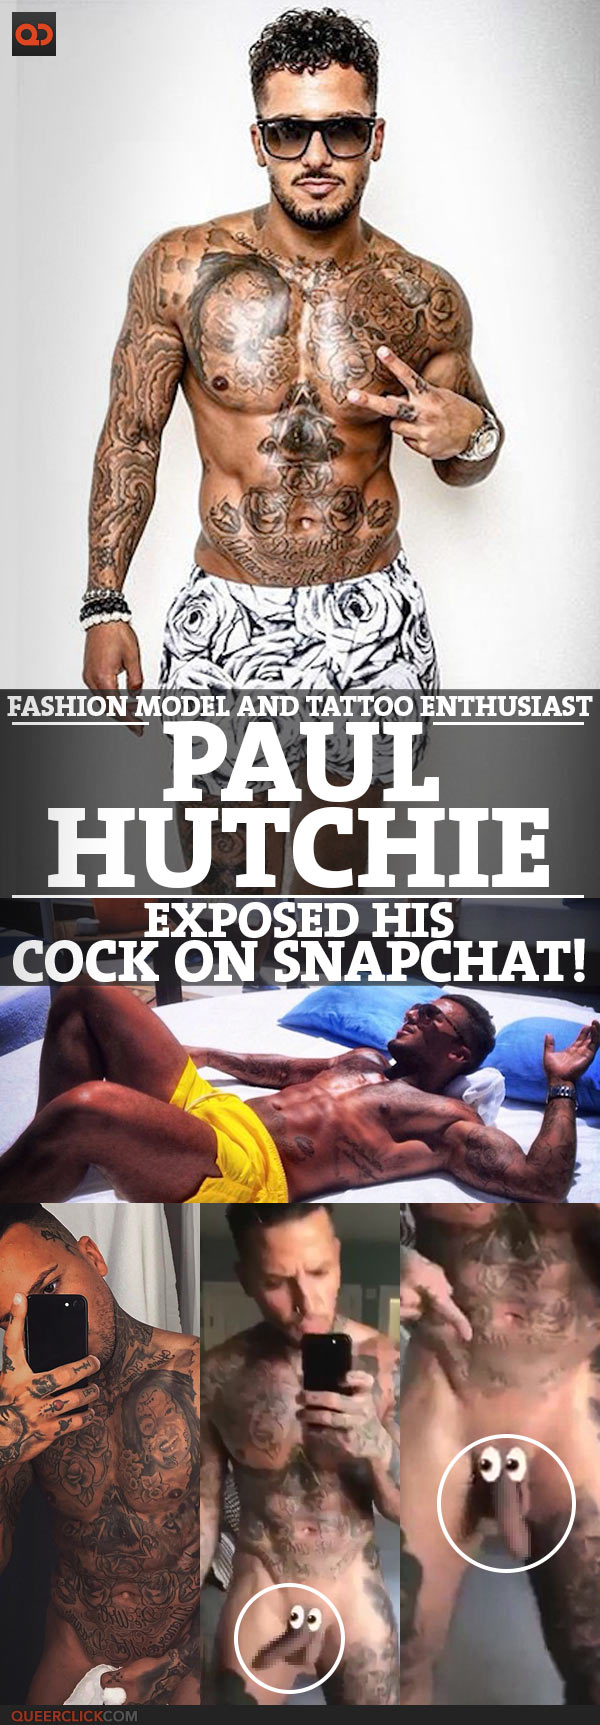 Paul Hutchie, Fashion Model And Tattoo Enthusiast, Exposed His Cock On Snapchat!